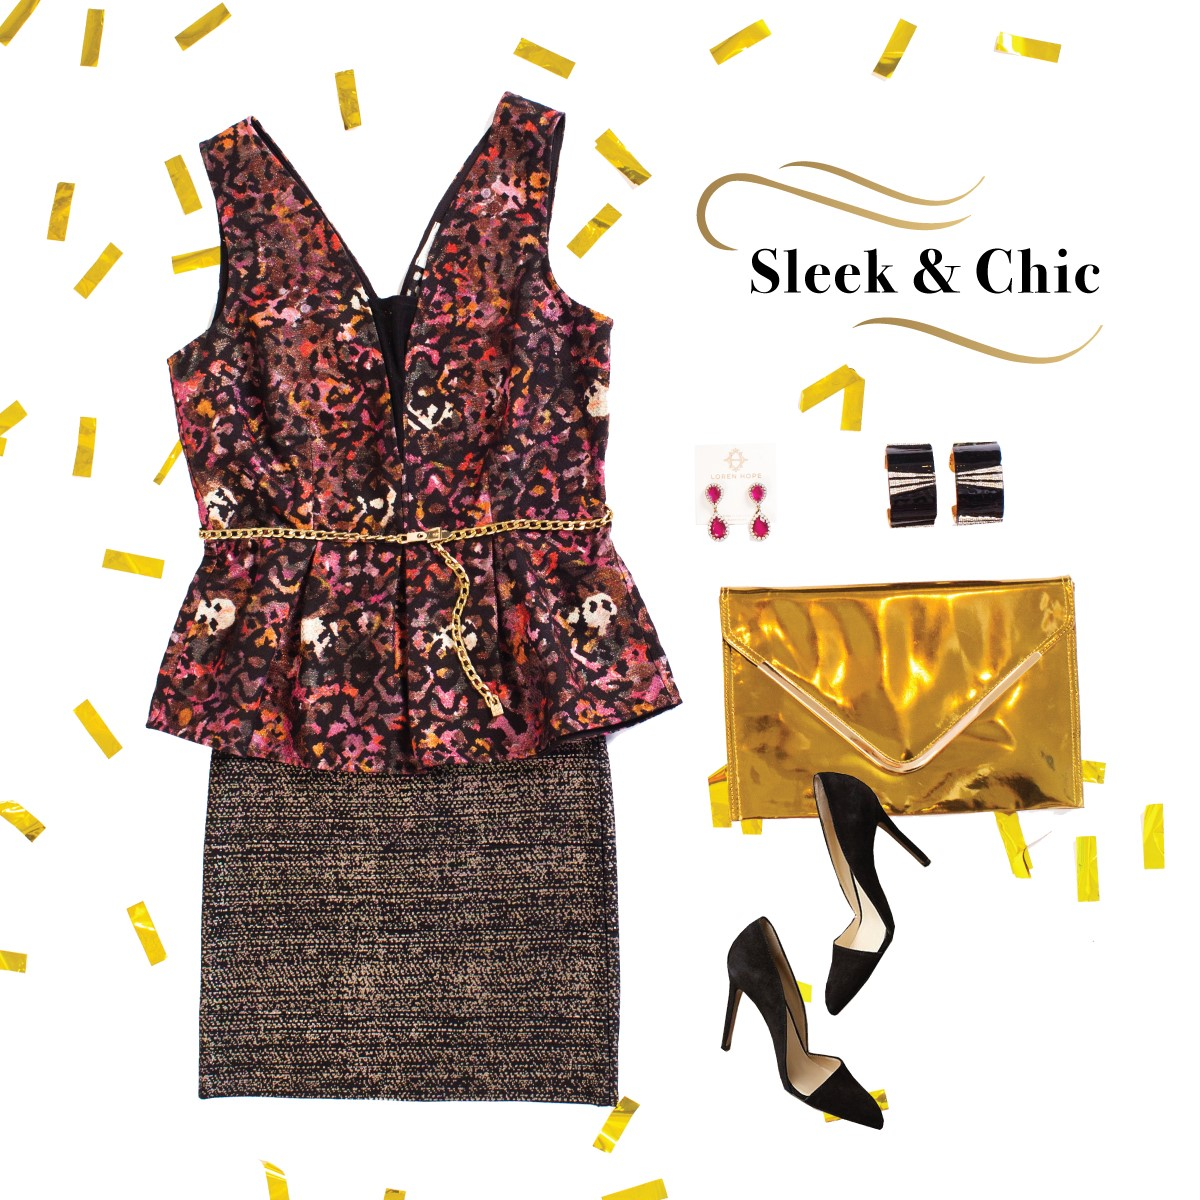 Sleek & Chic NYE outfit